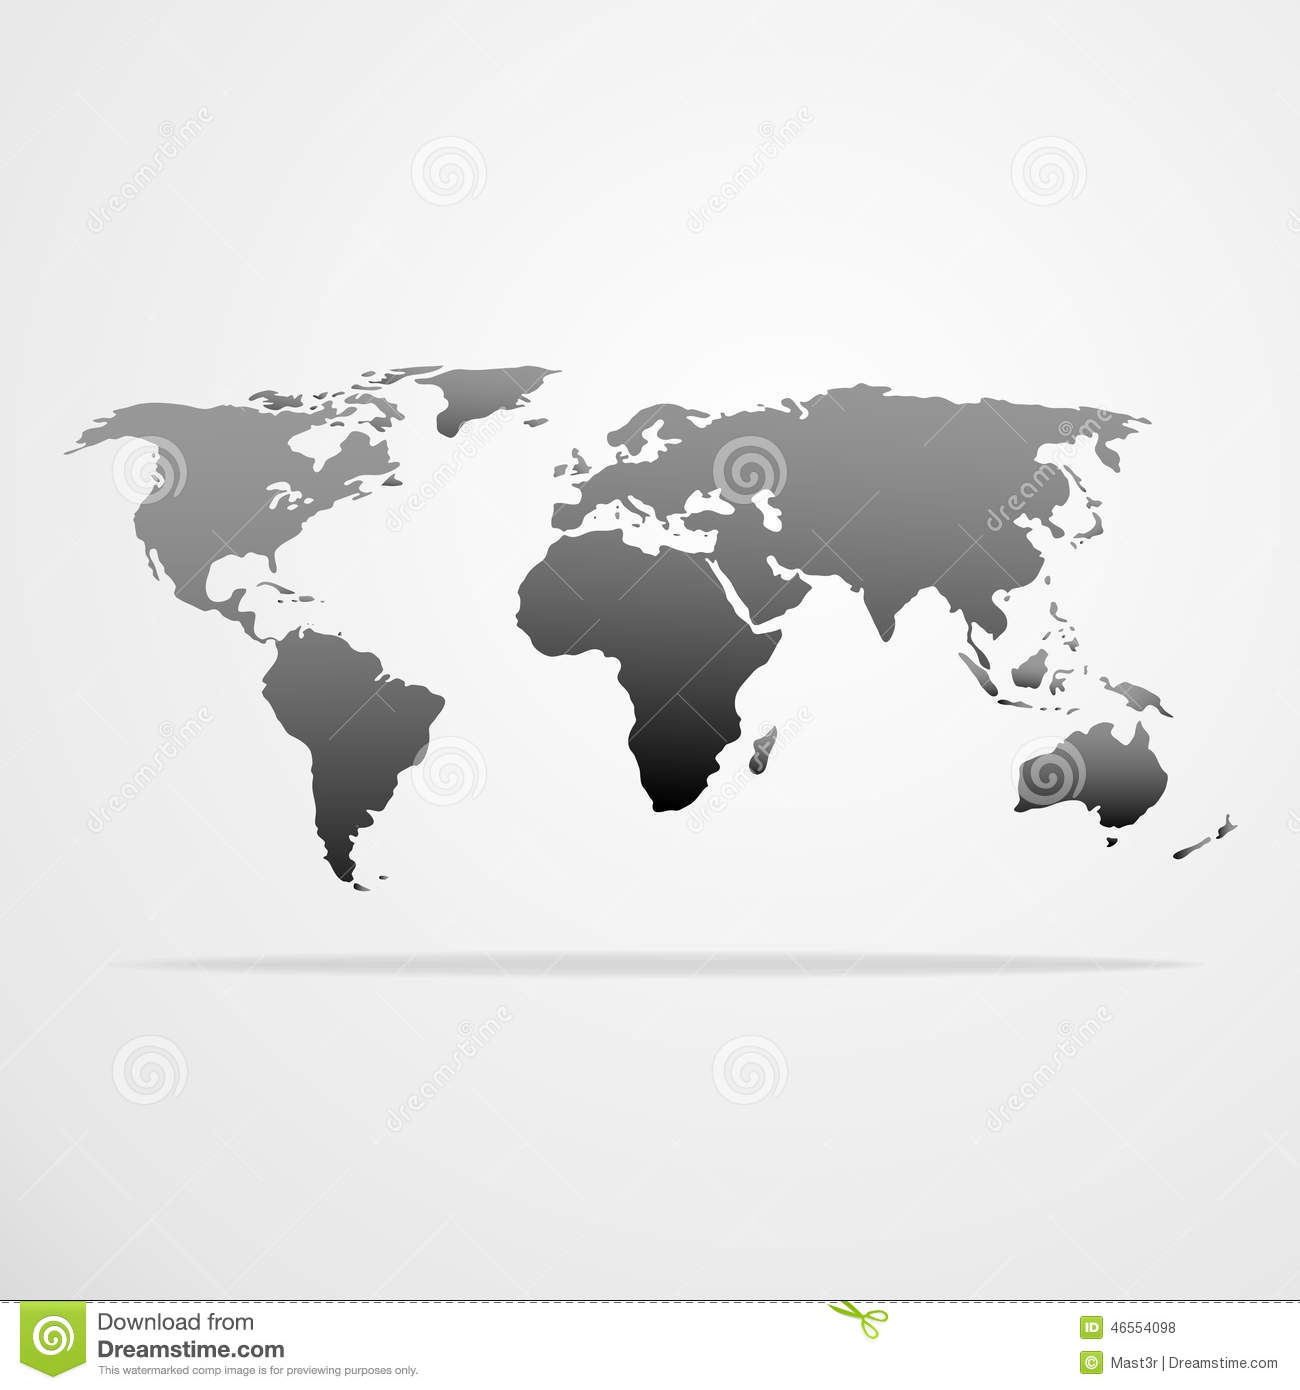 World map icon gray vector illustration illustration 46554098 megapixl royalty free gumiabroncs Choice Image